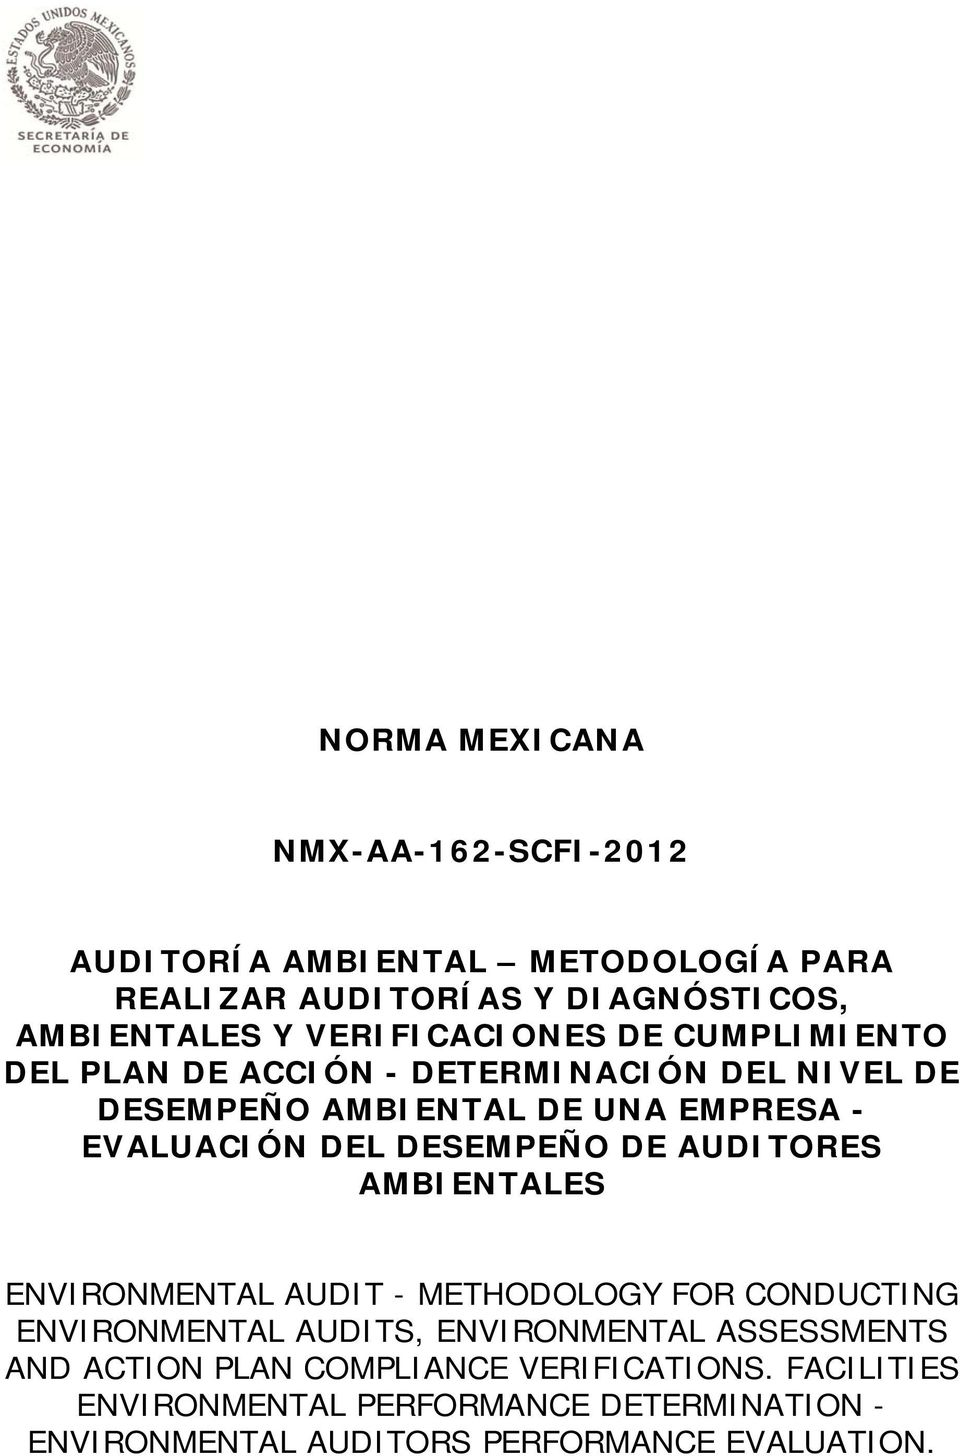 DESEMPEÑO DE AUDITORES AMBIENTALES ENVIRONMENTAL AUDIT - METHODOLOGY FOR CONDUCTING ENVIRONMENTAL AUDITS, ENVIRONMENTAL ASSESSMENTS